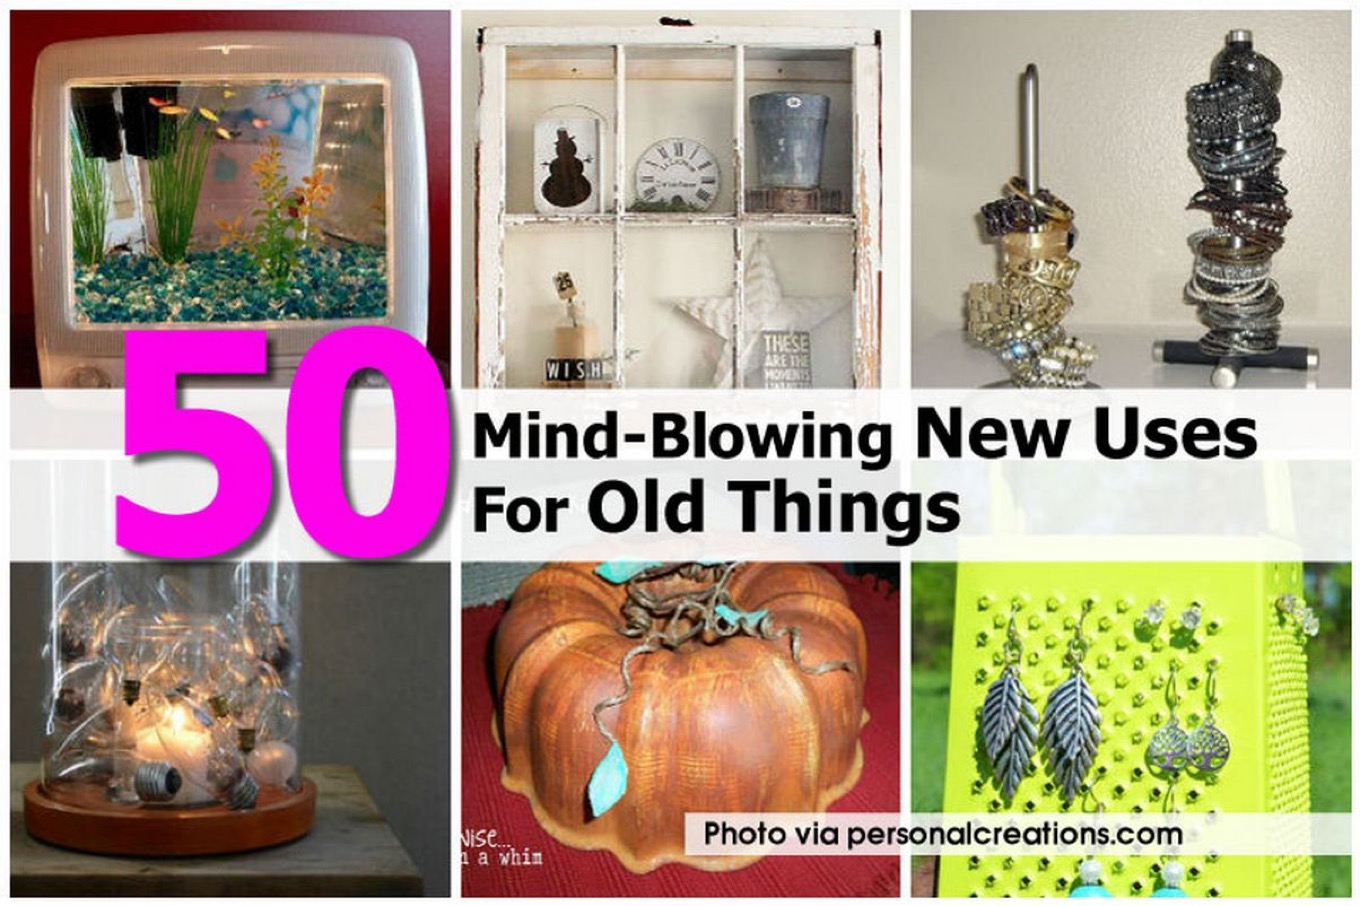 new-uses-for-old-things-personalcreations-com-10